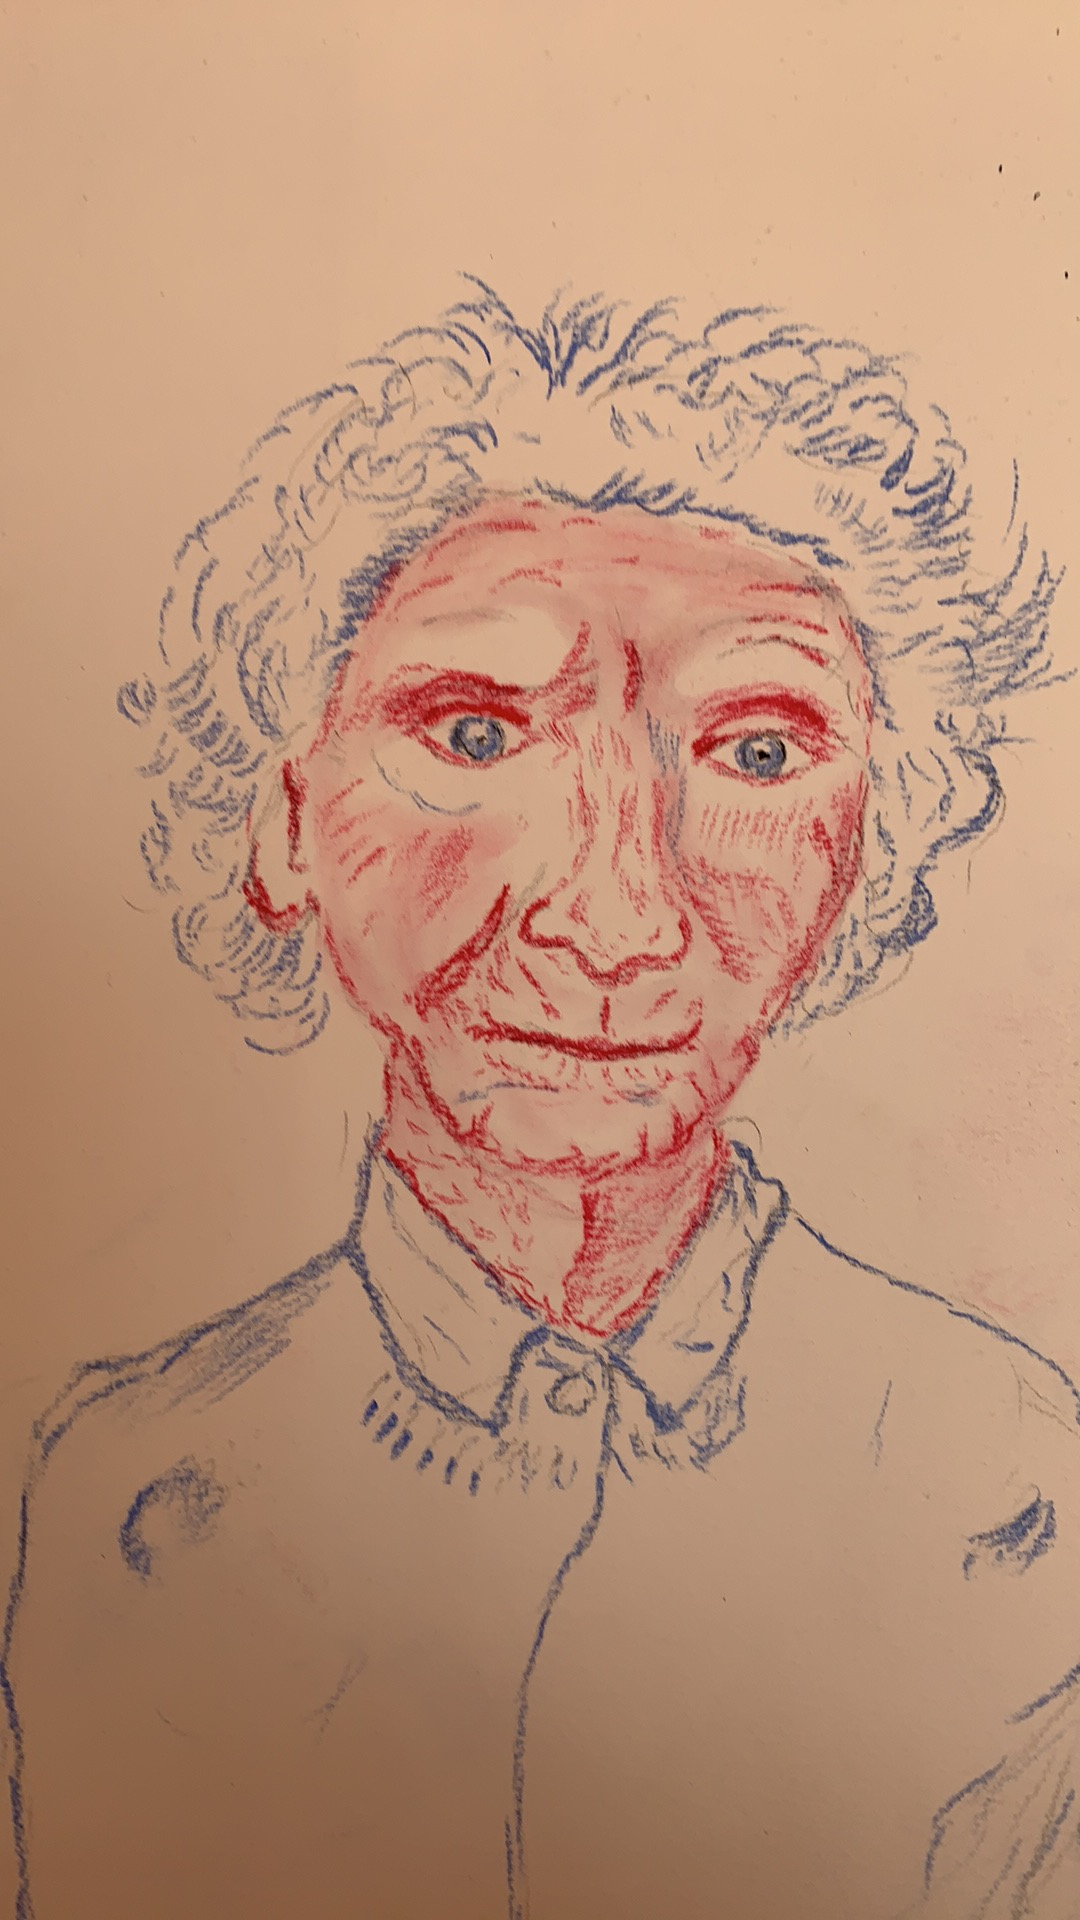 Learn how to draw Portraits at online art classes